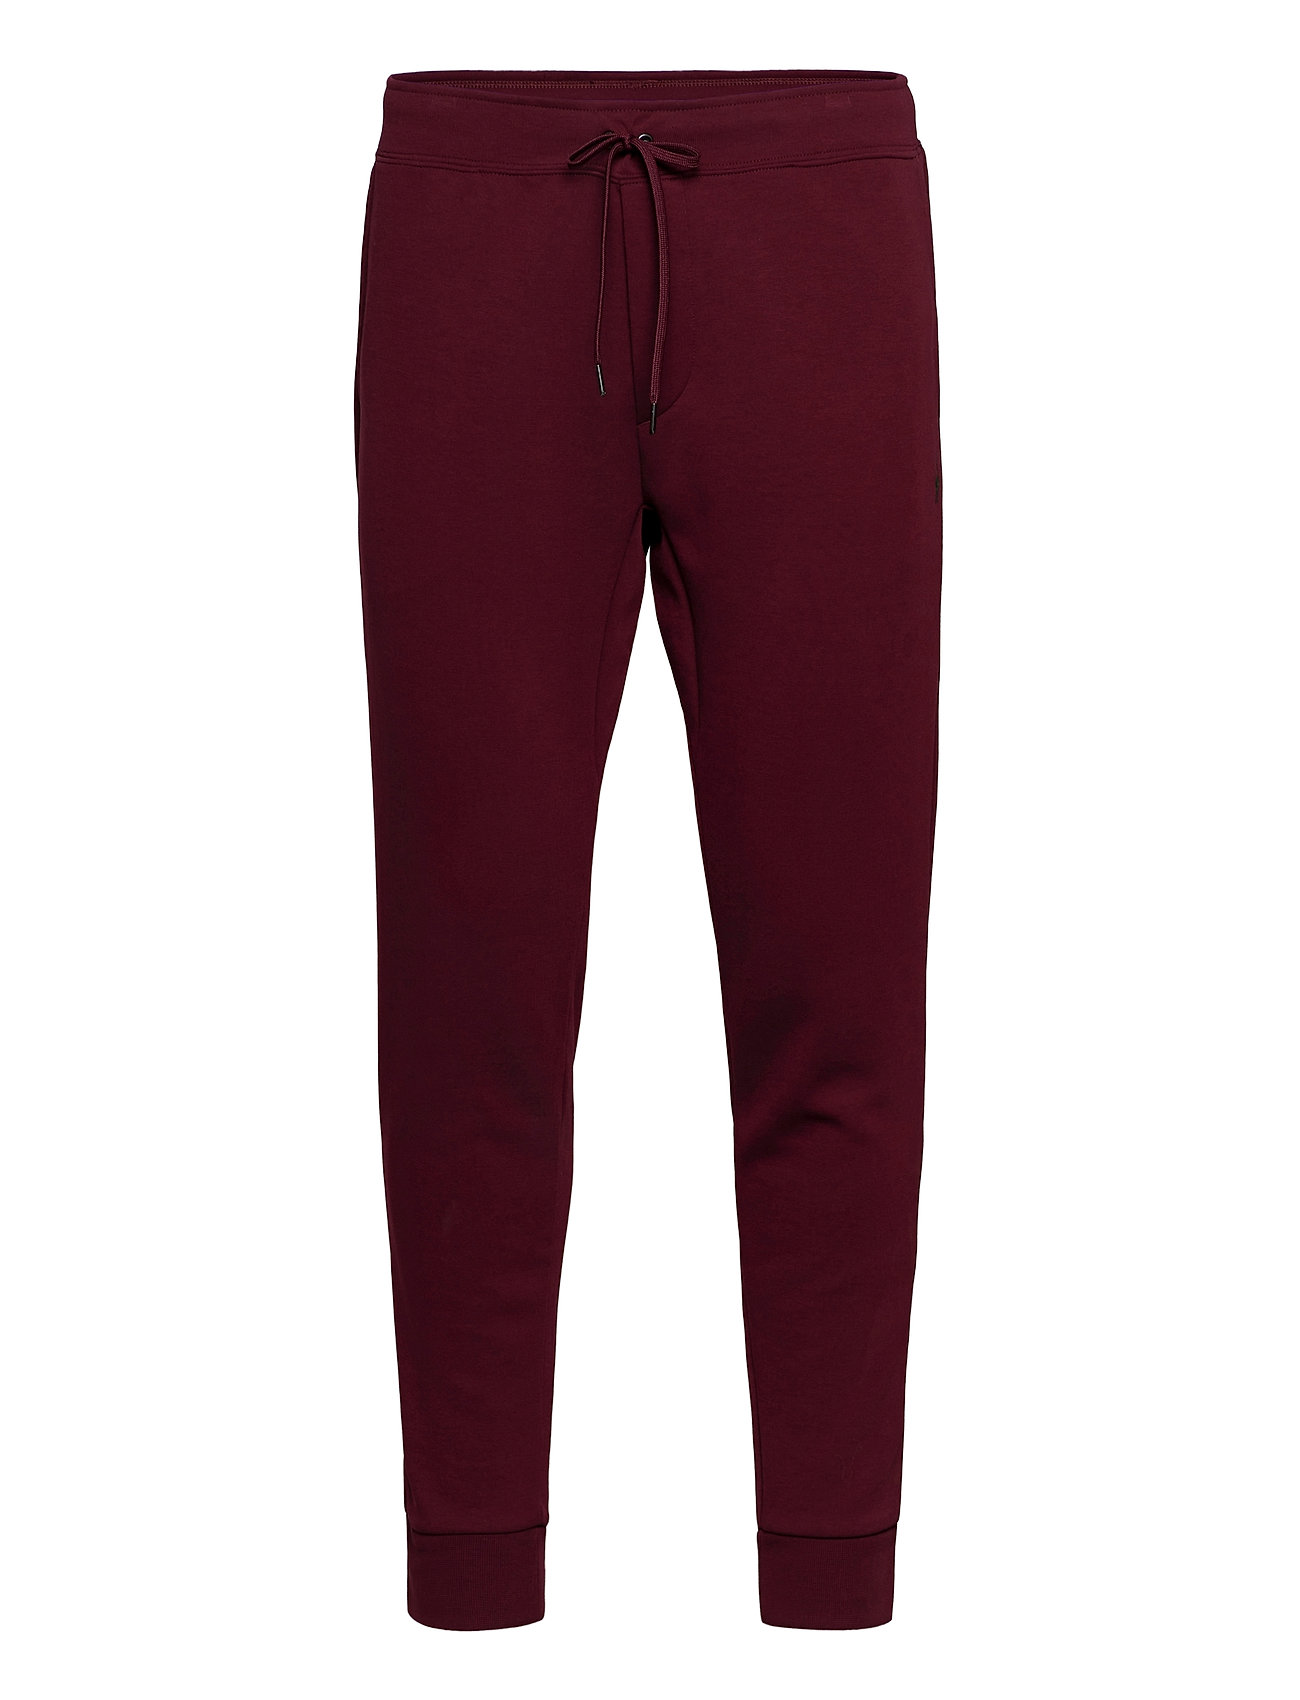 Polo Ralph Lauren Double-Knit Jogger - CLASSIC WINE